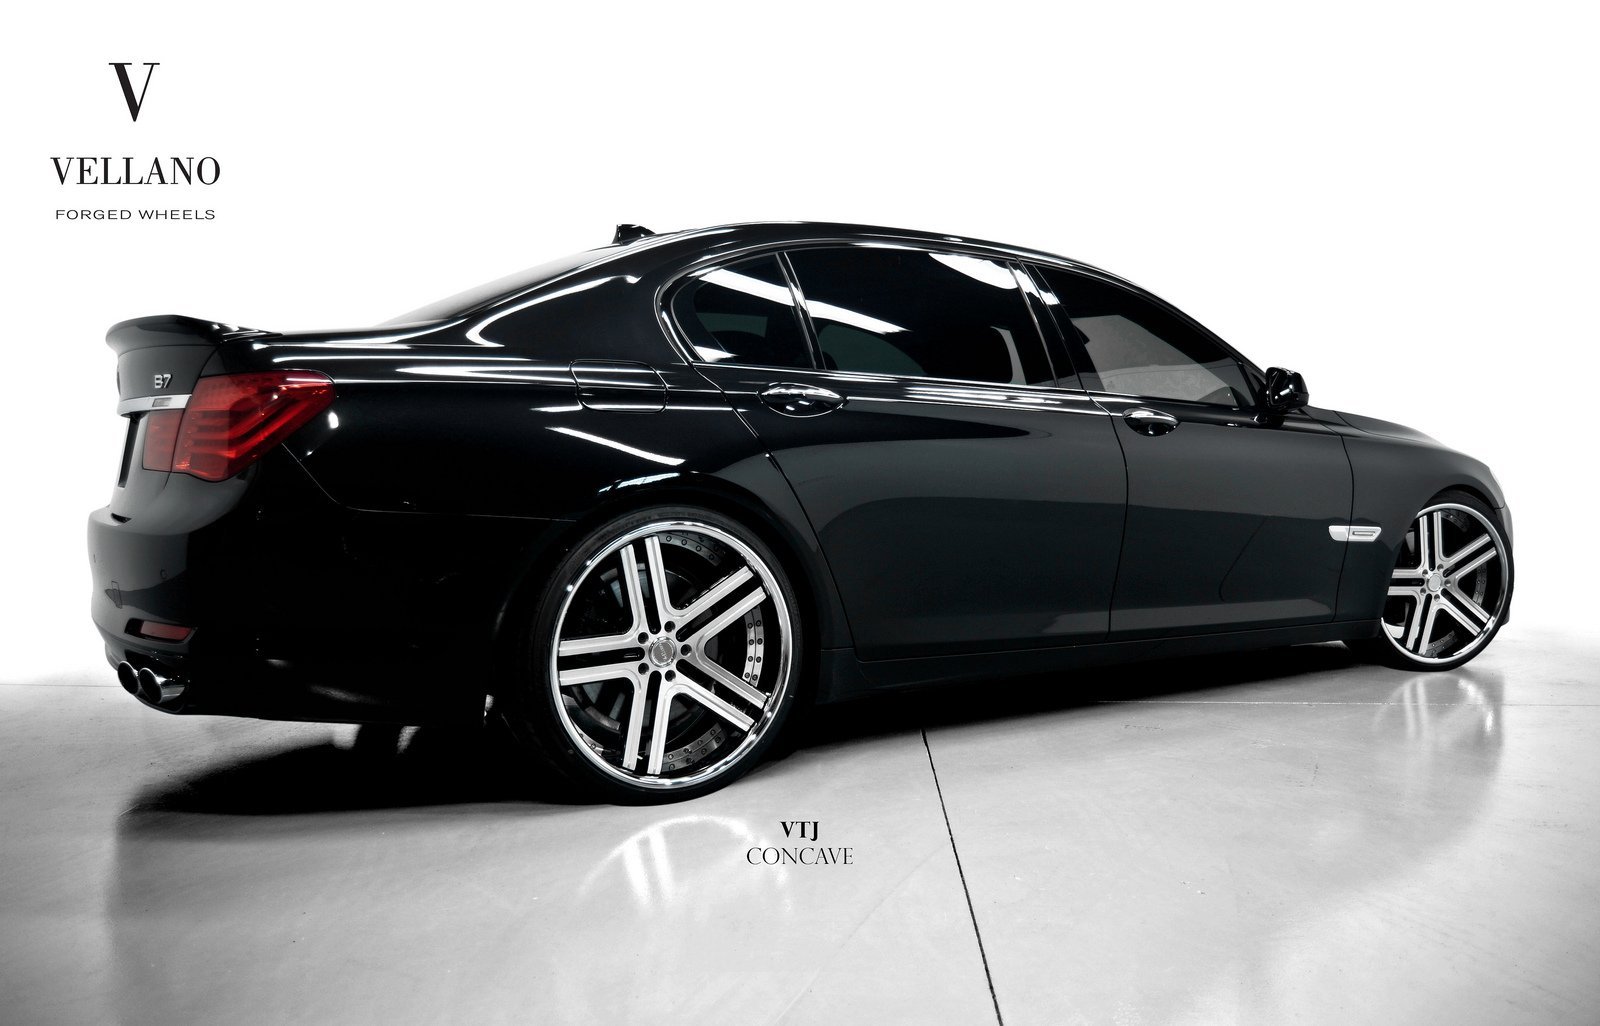 Black Cars Wallpaper 7 Background: BMW 7-SERIES Black Vellano Wheels Tuning Cars Wallpaper